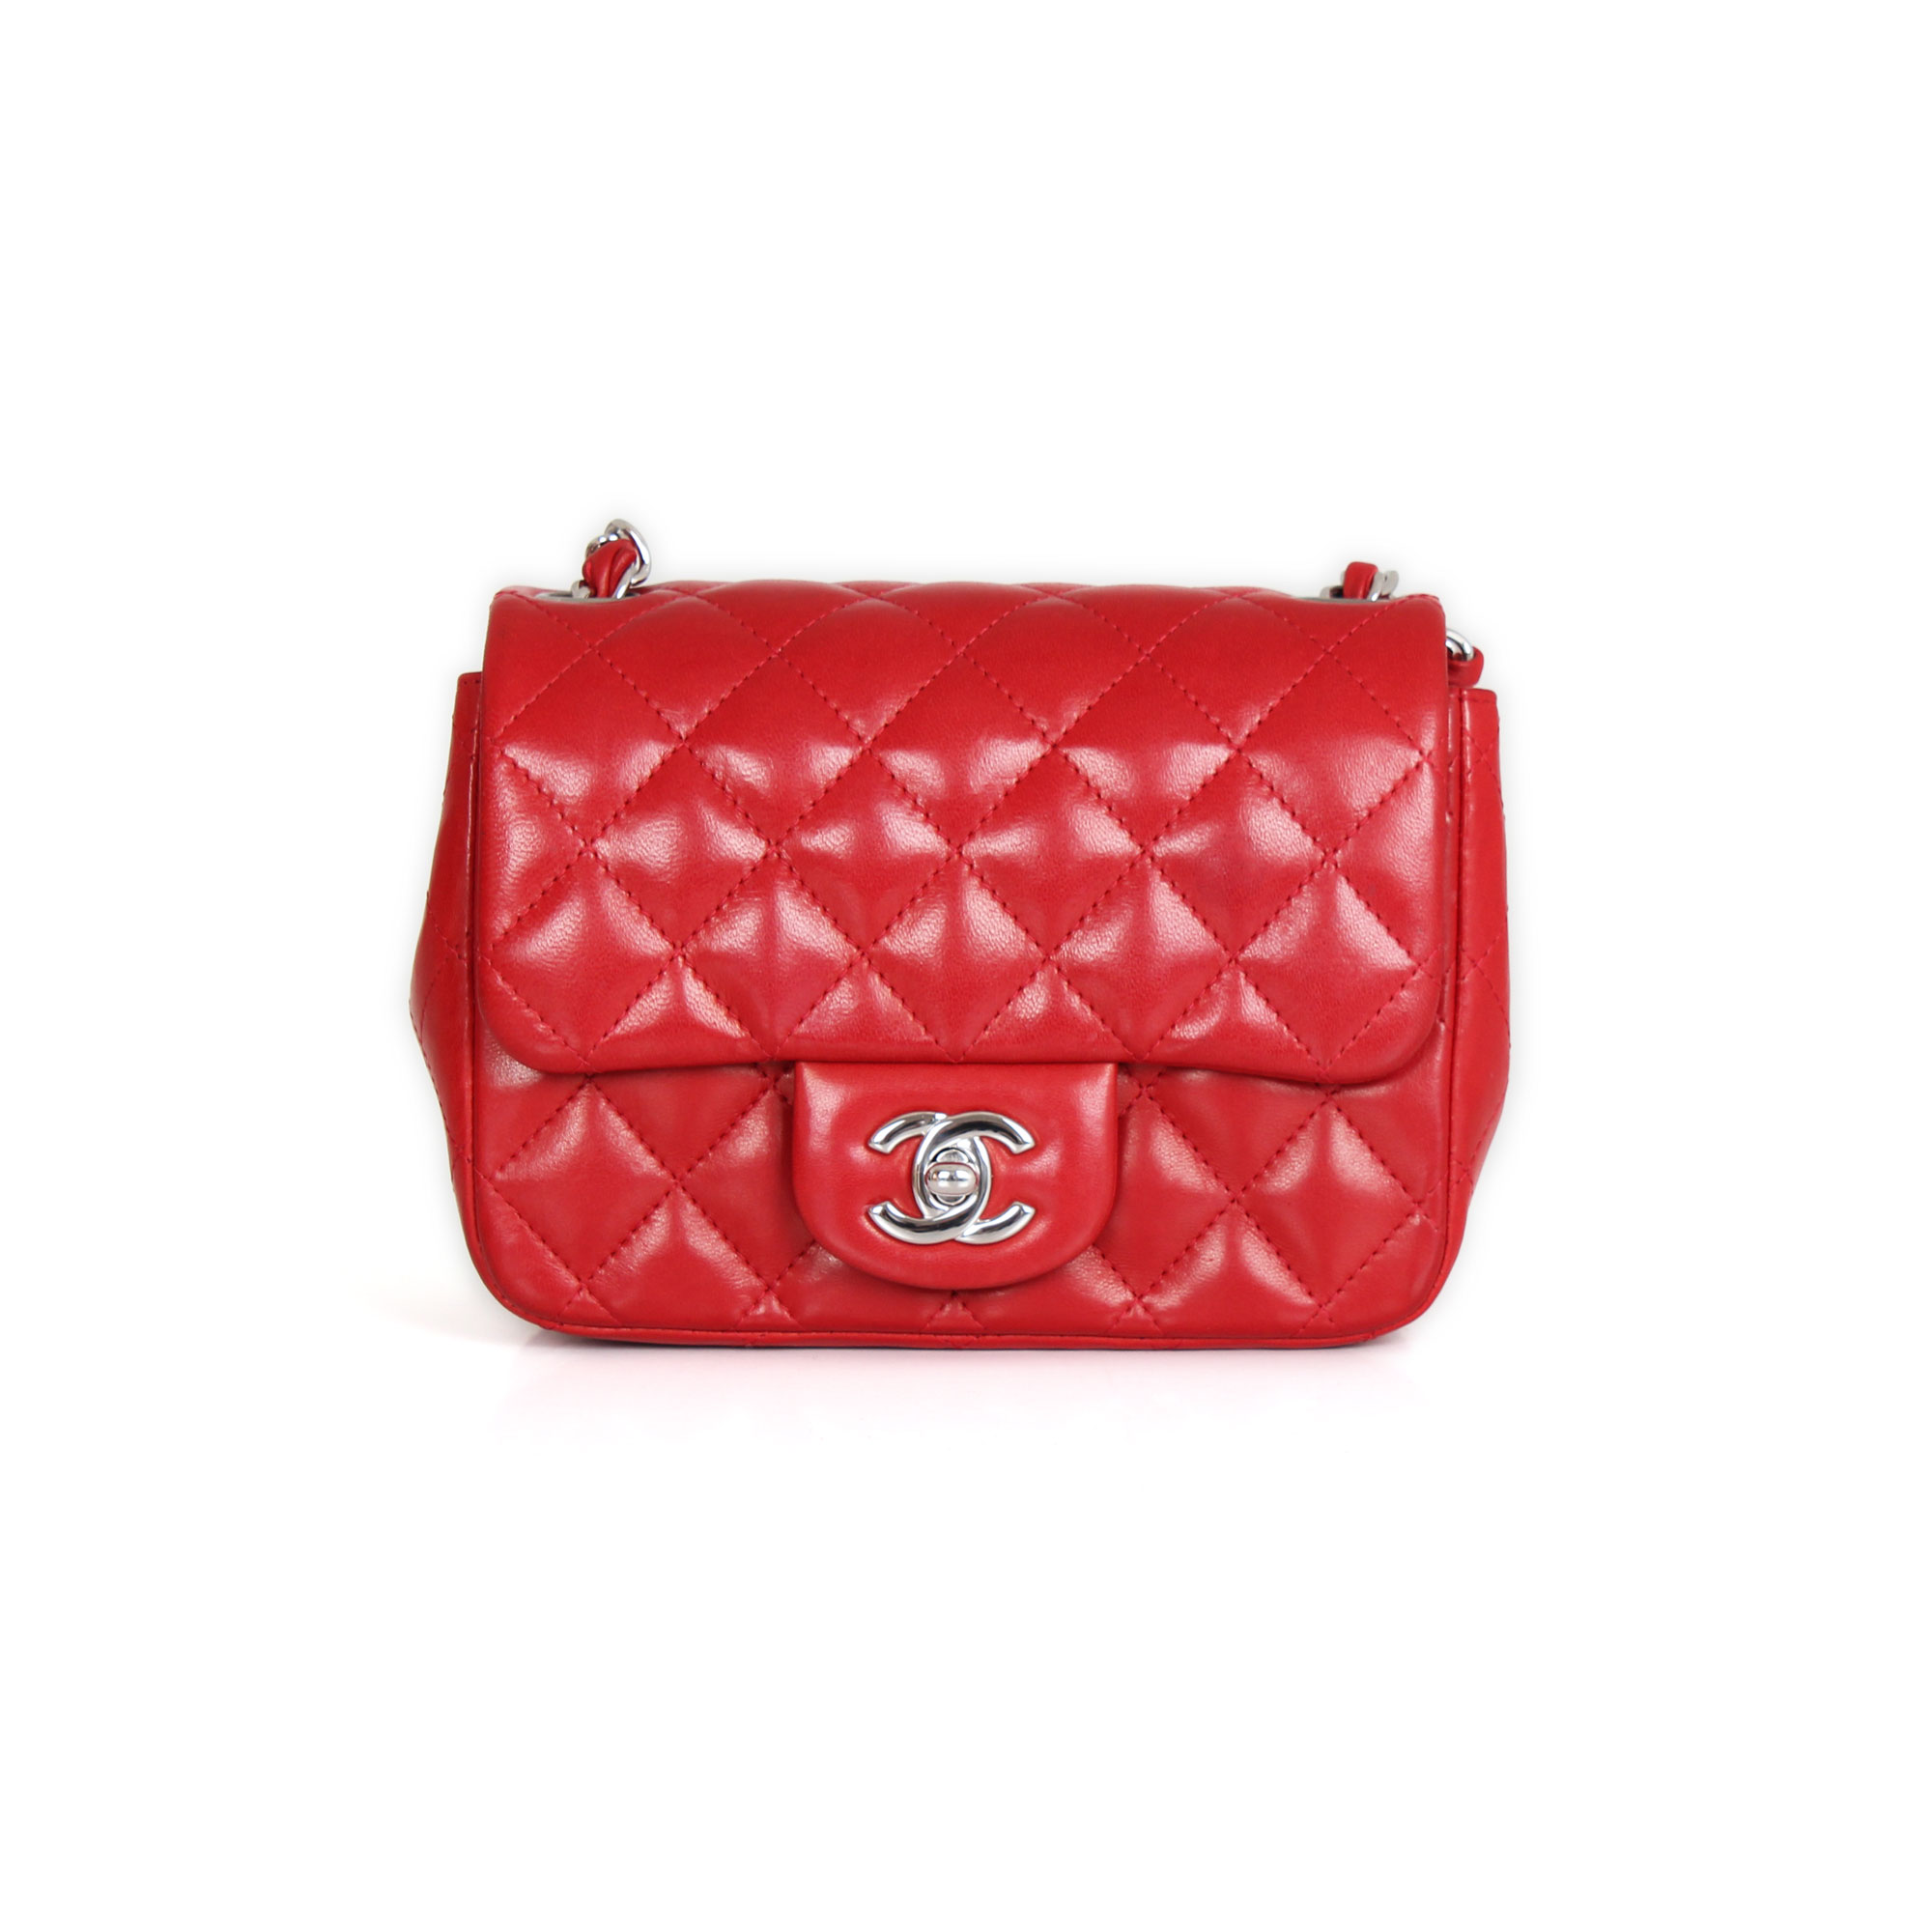 55a8e0382f69 Chanel Timeless Mini Square Red lambskin leather | CBL Bags